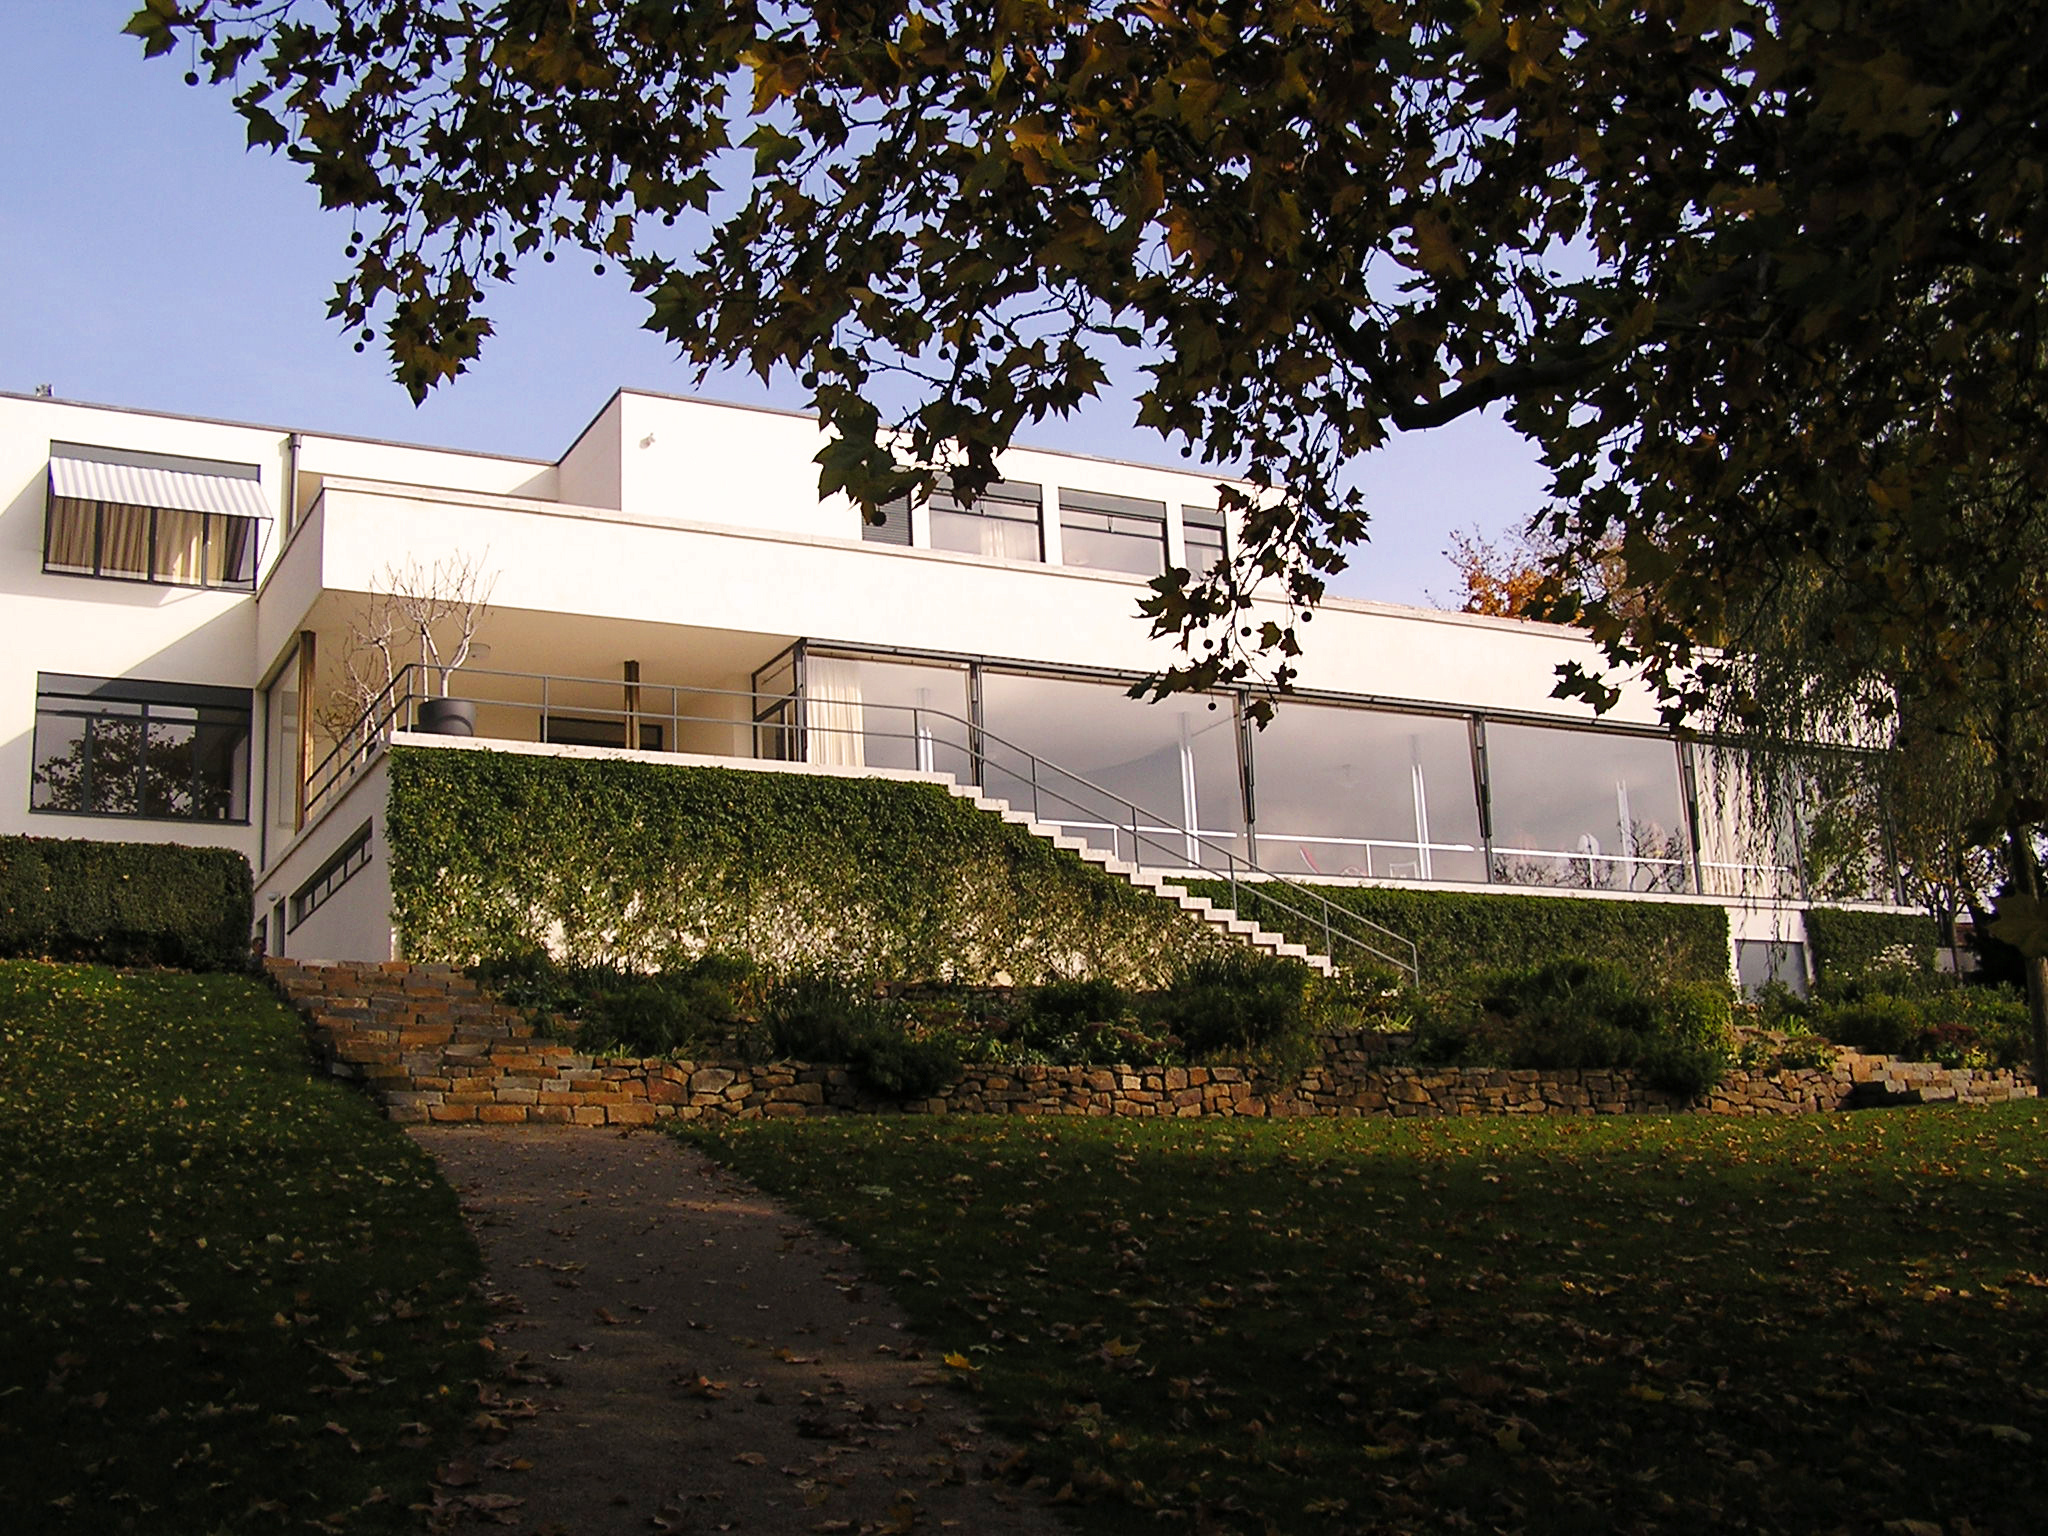 Villa Tugendhat villa tugendhat residence in brno thousand wonders